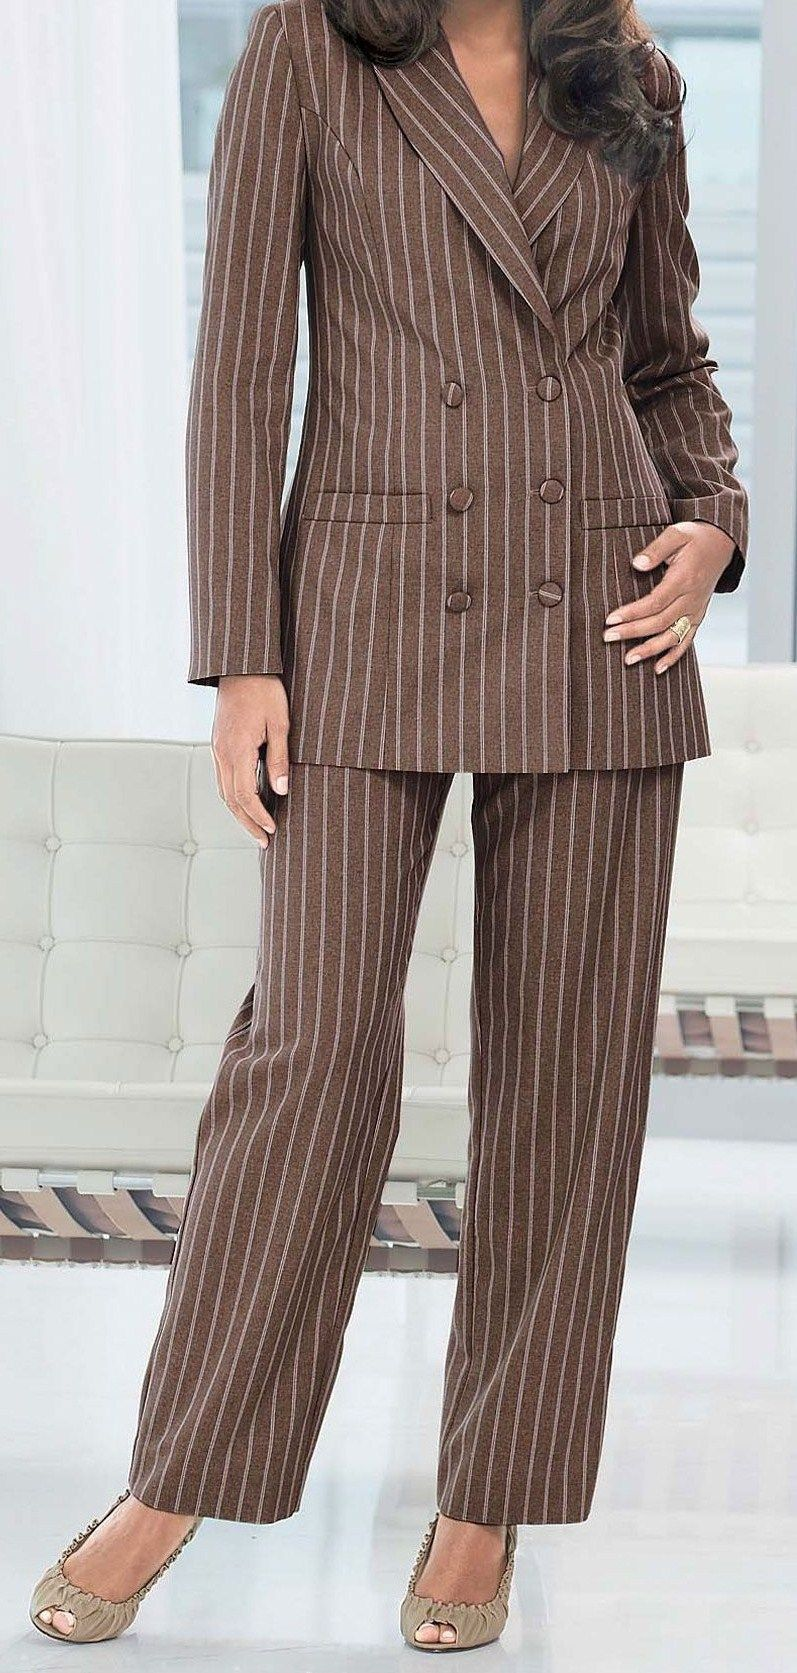 Wearing The Perfect Elegant Pant Suits For Plus Sized Women